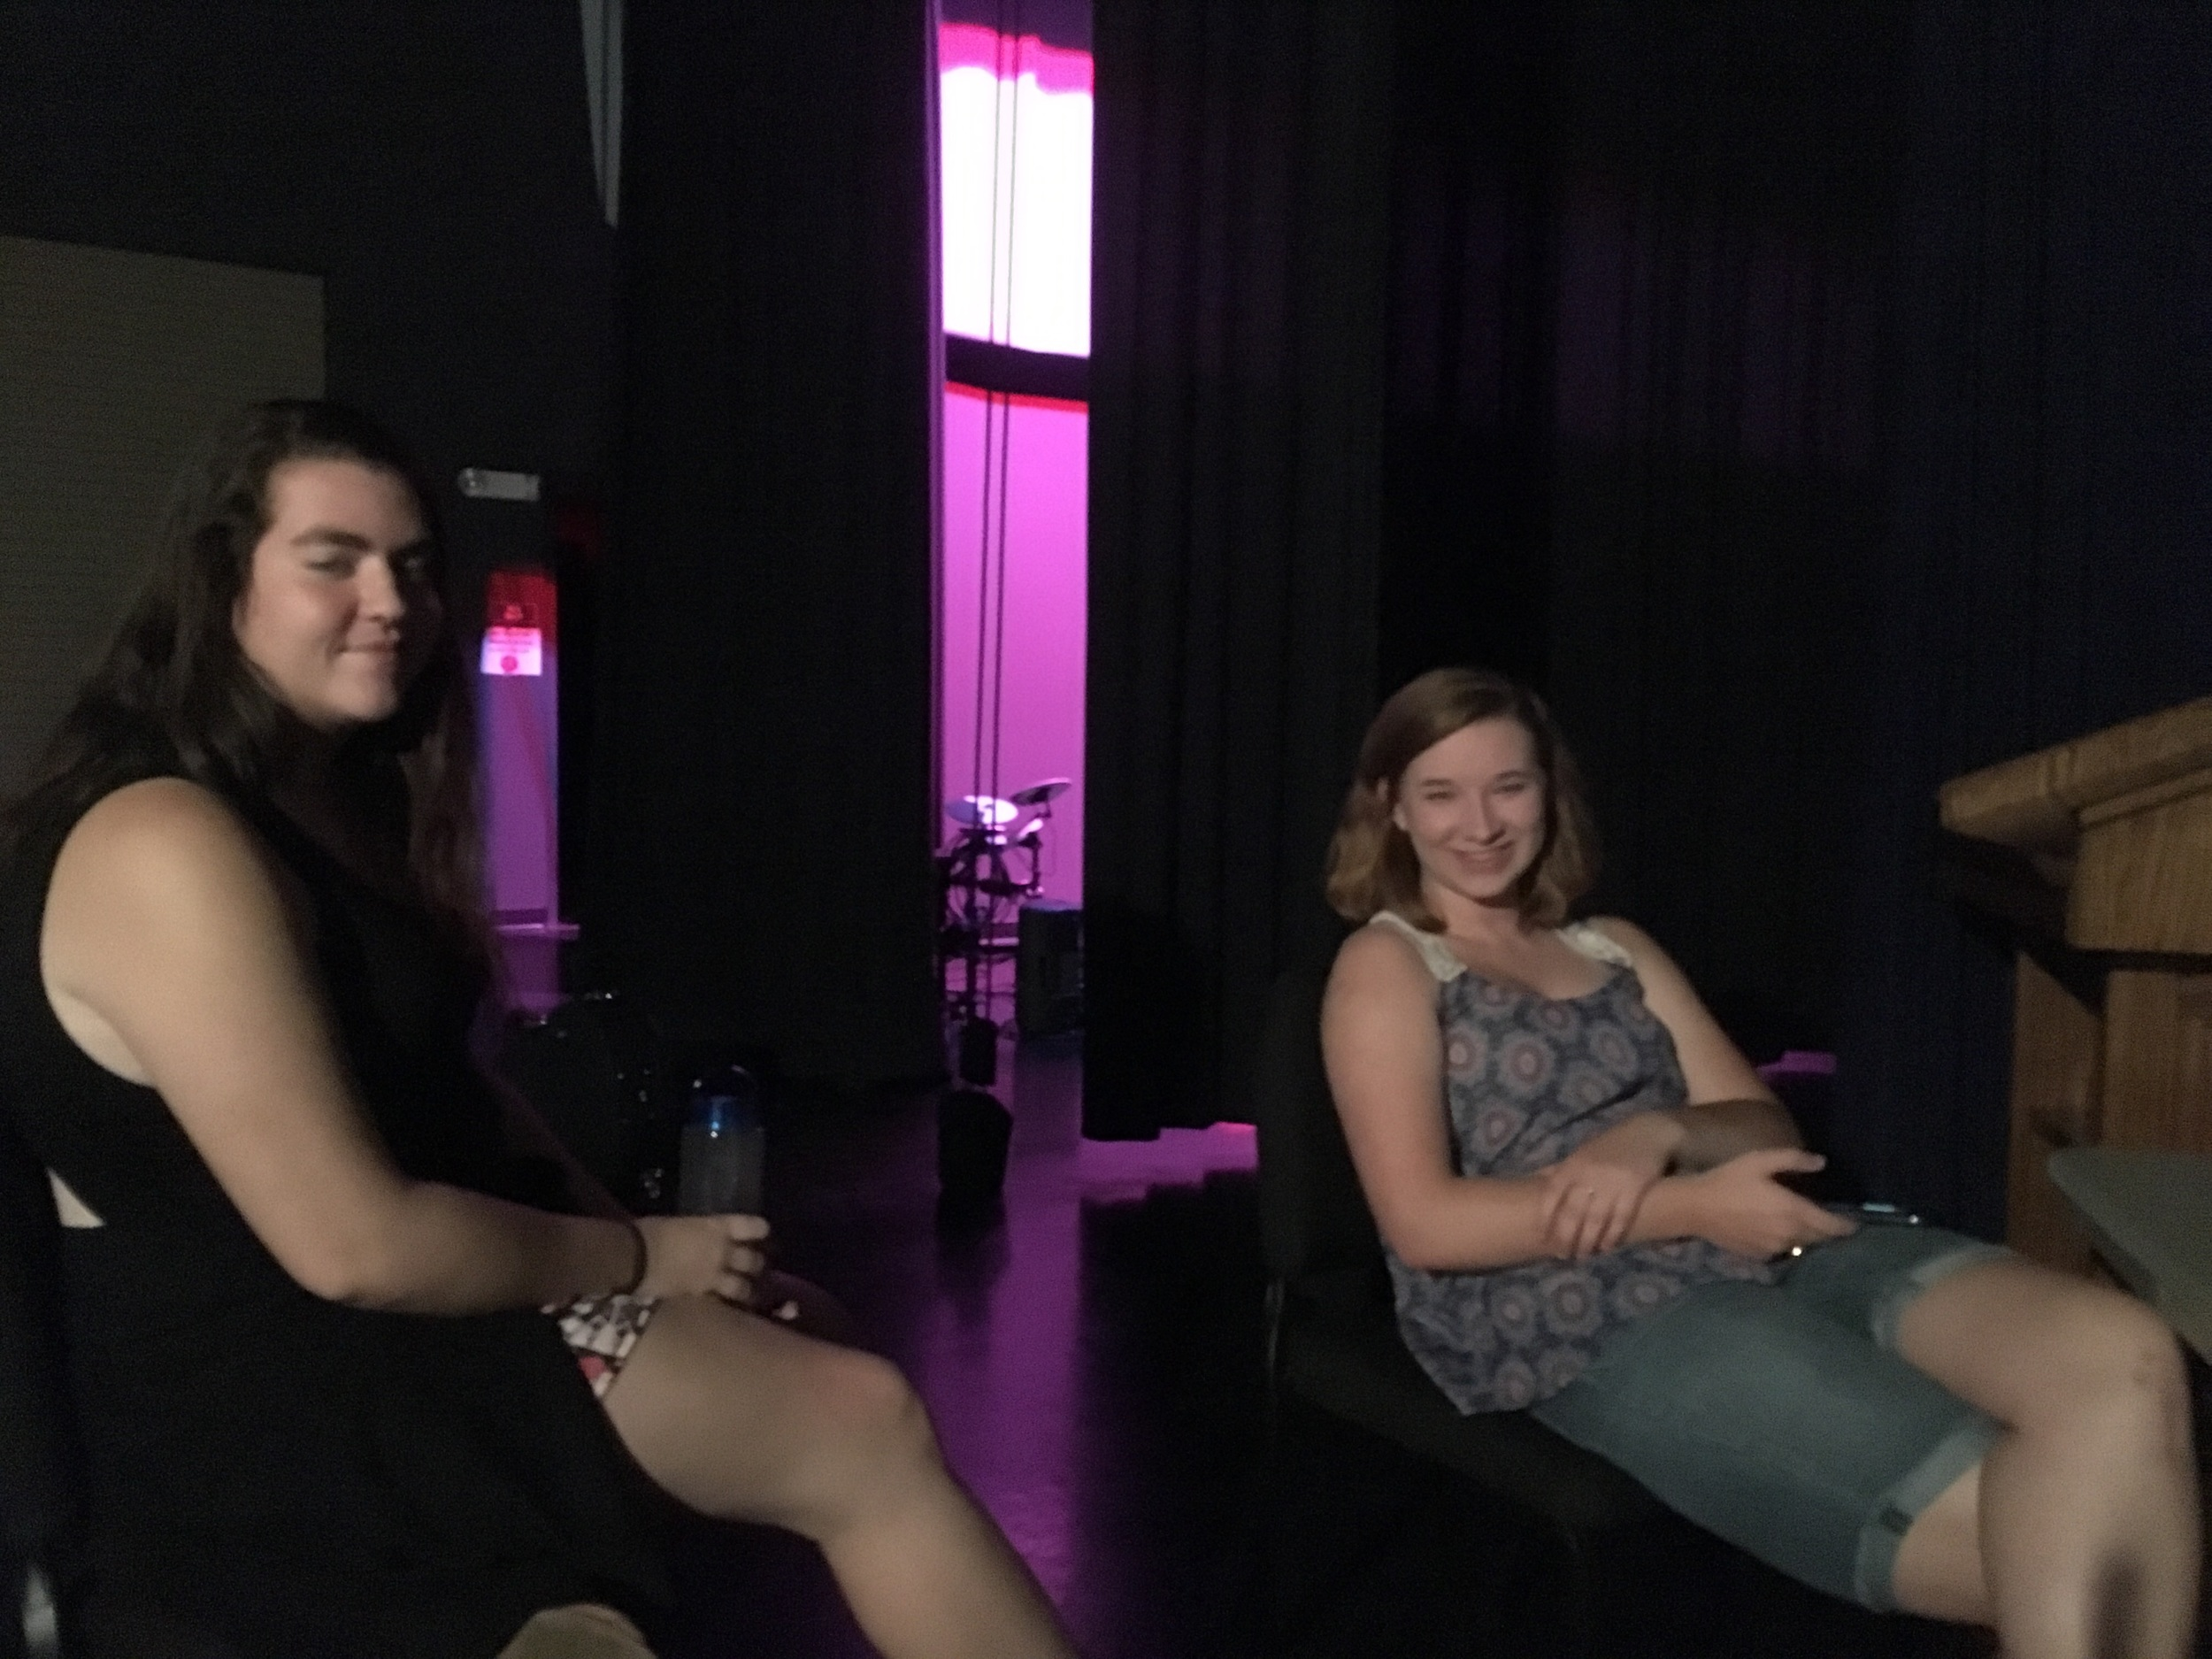 Backstage with Rebecca and Becky. I'm going to miss them when they go.